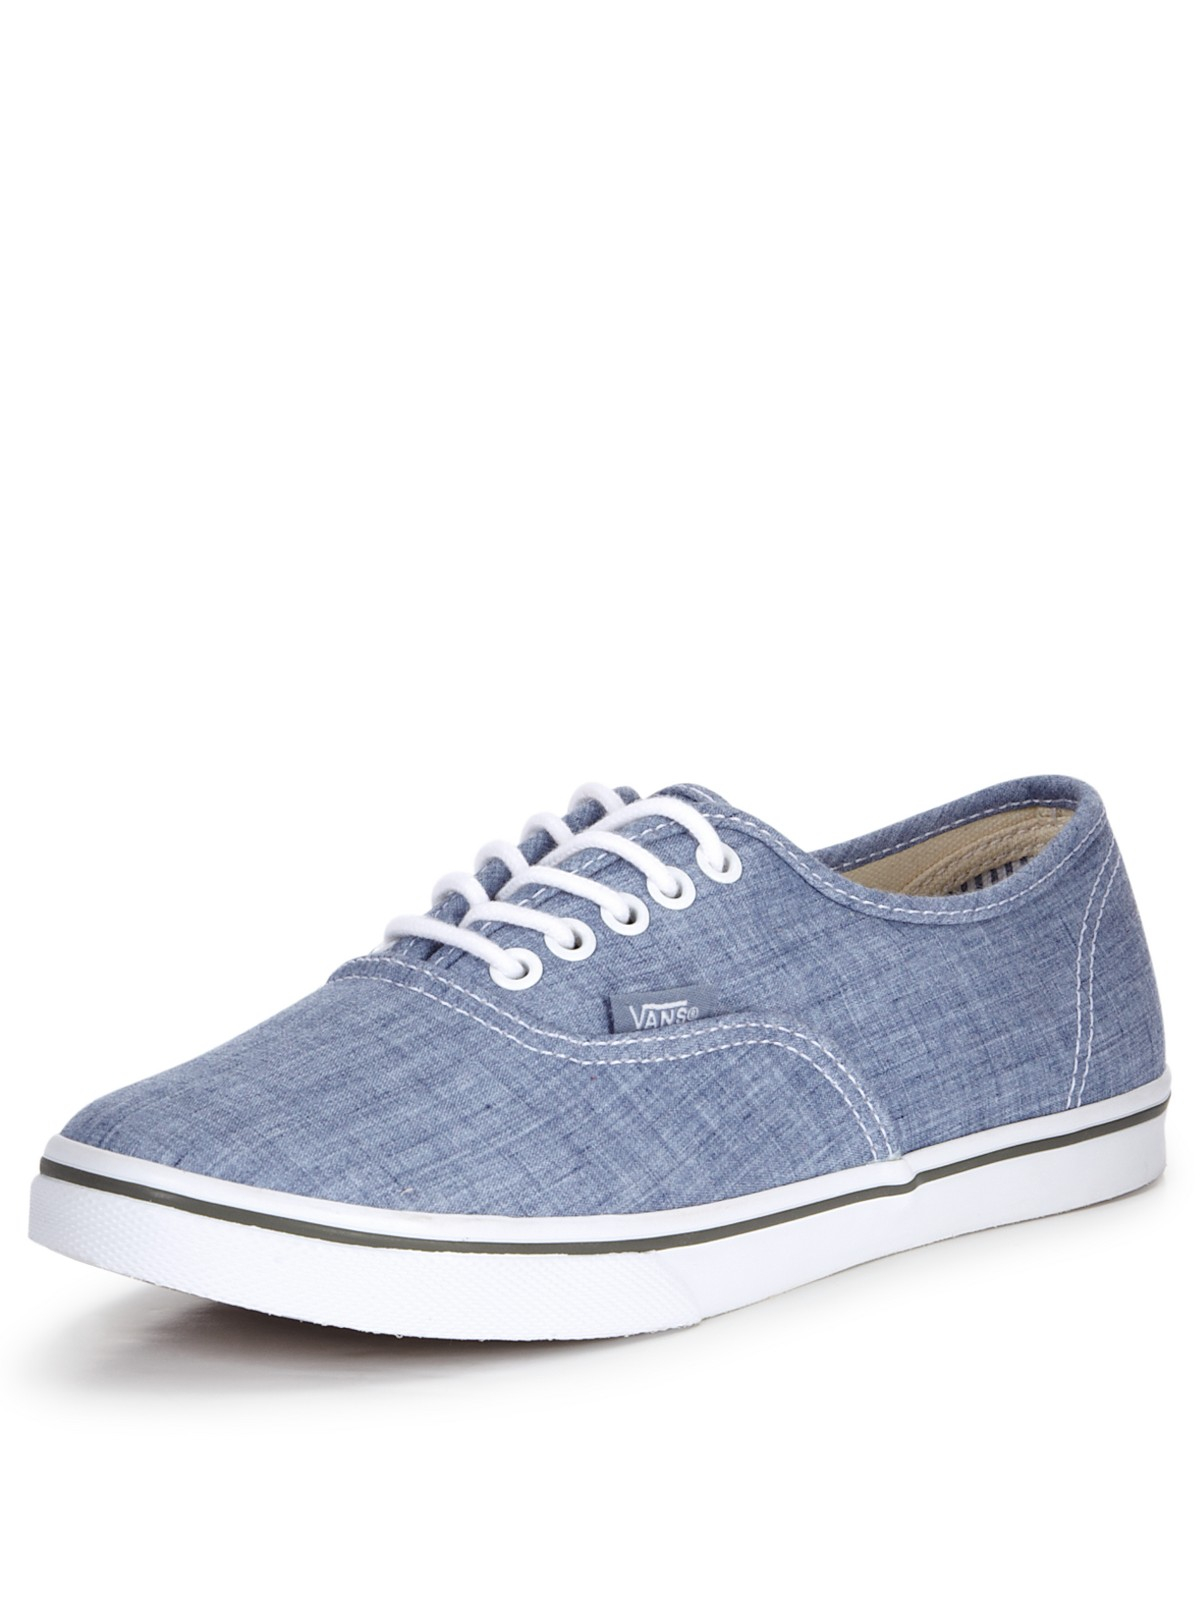 vans vans authentic lo pro chambray plimsolls in blue for. Black Bedroom Furniture Sets. Home Design Ideas